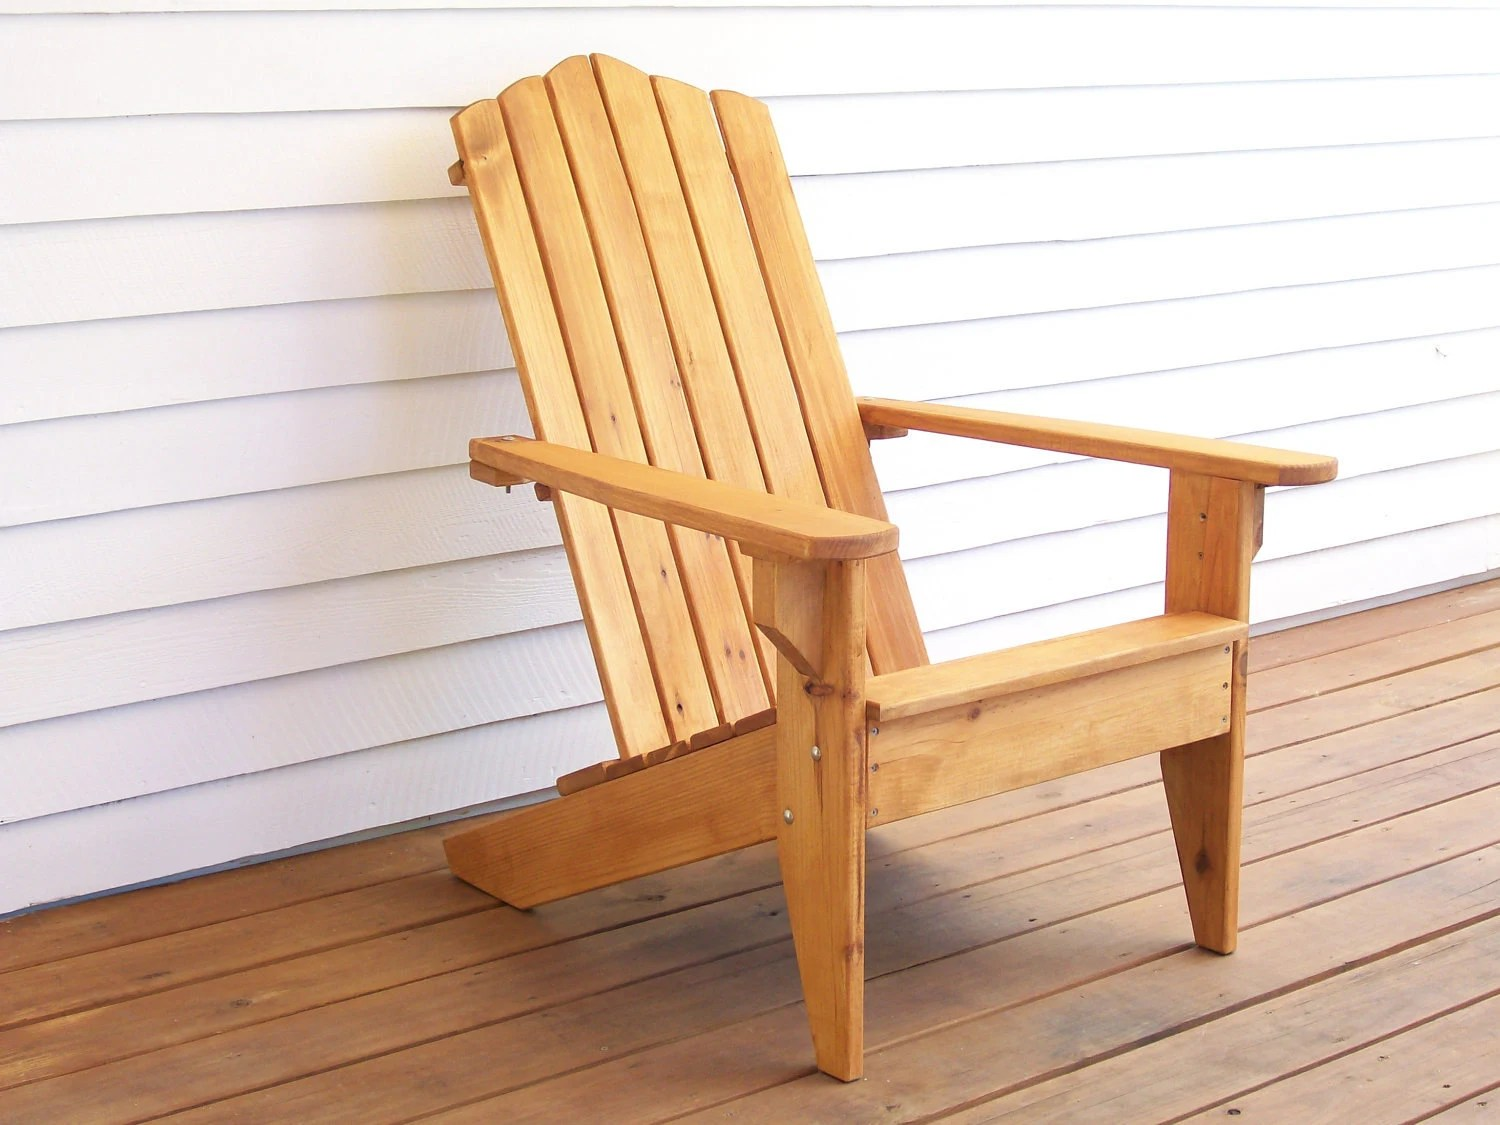 Chairs For Outdoor Adirondack Wood Chair Adirondack Furniture Outdoor Wood